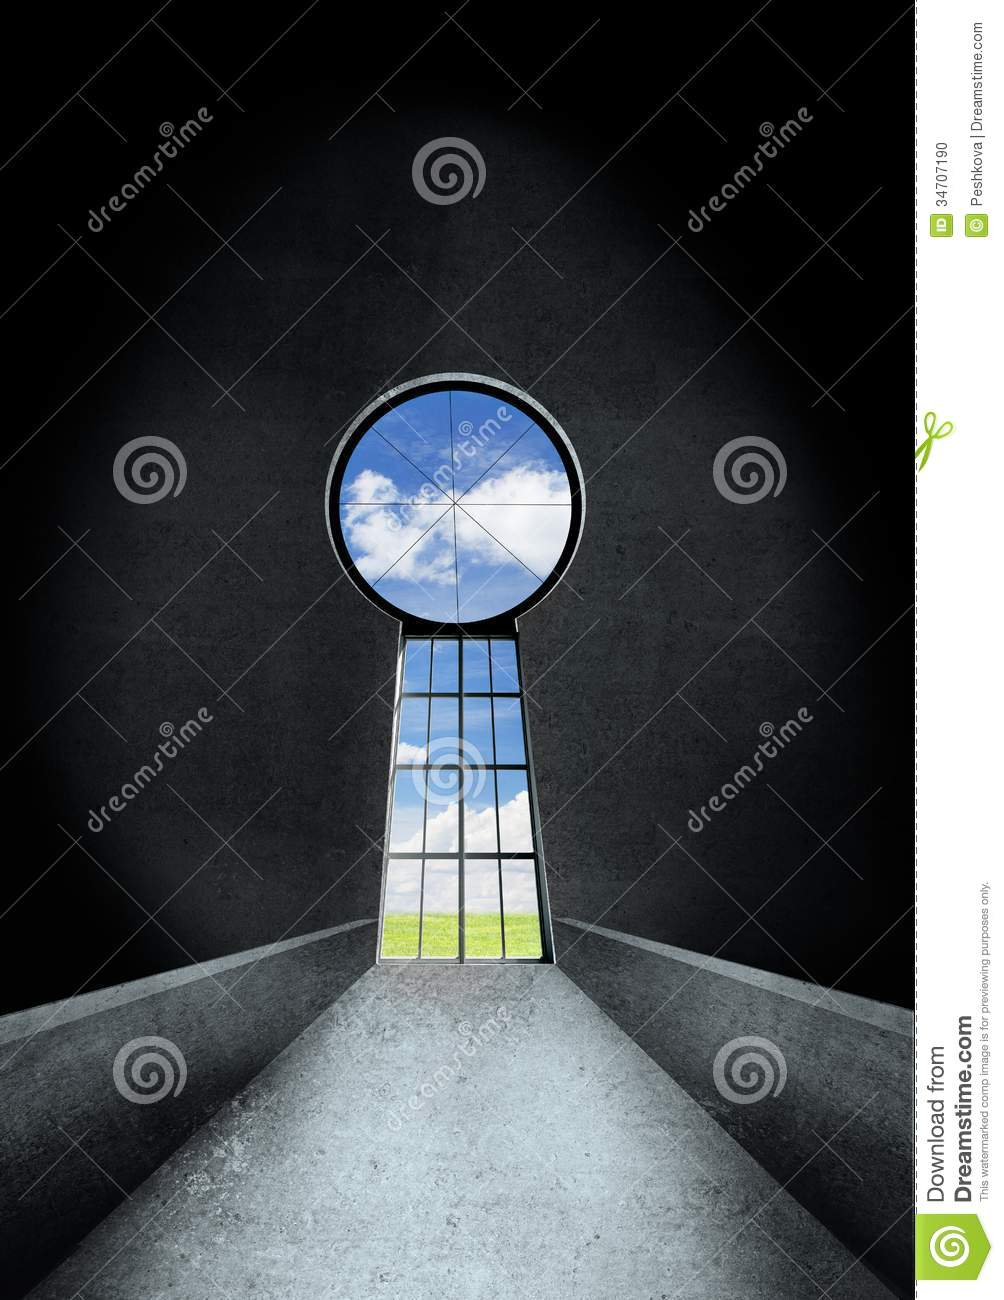 Door keyhole & Door keyhole stock photo. Image of field nobody grass - 34707190